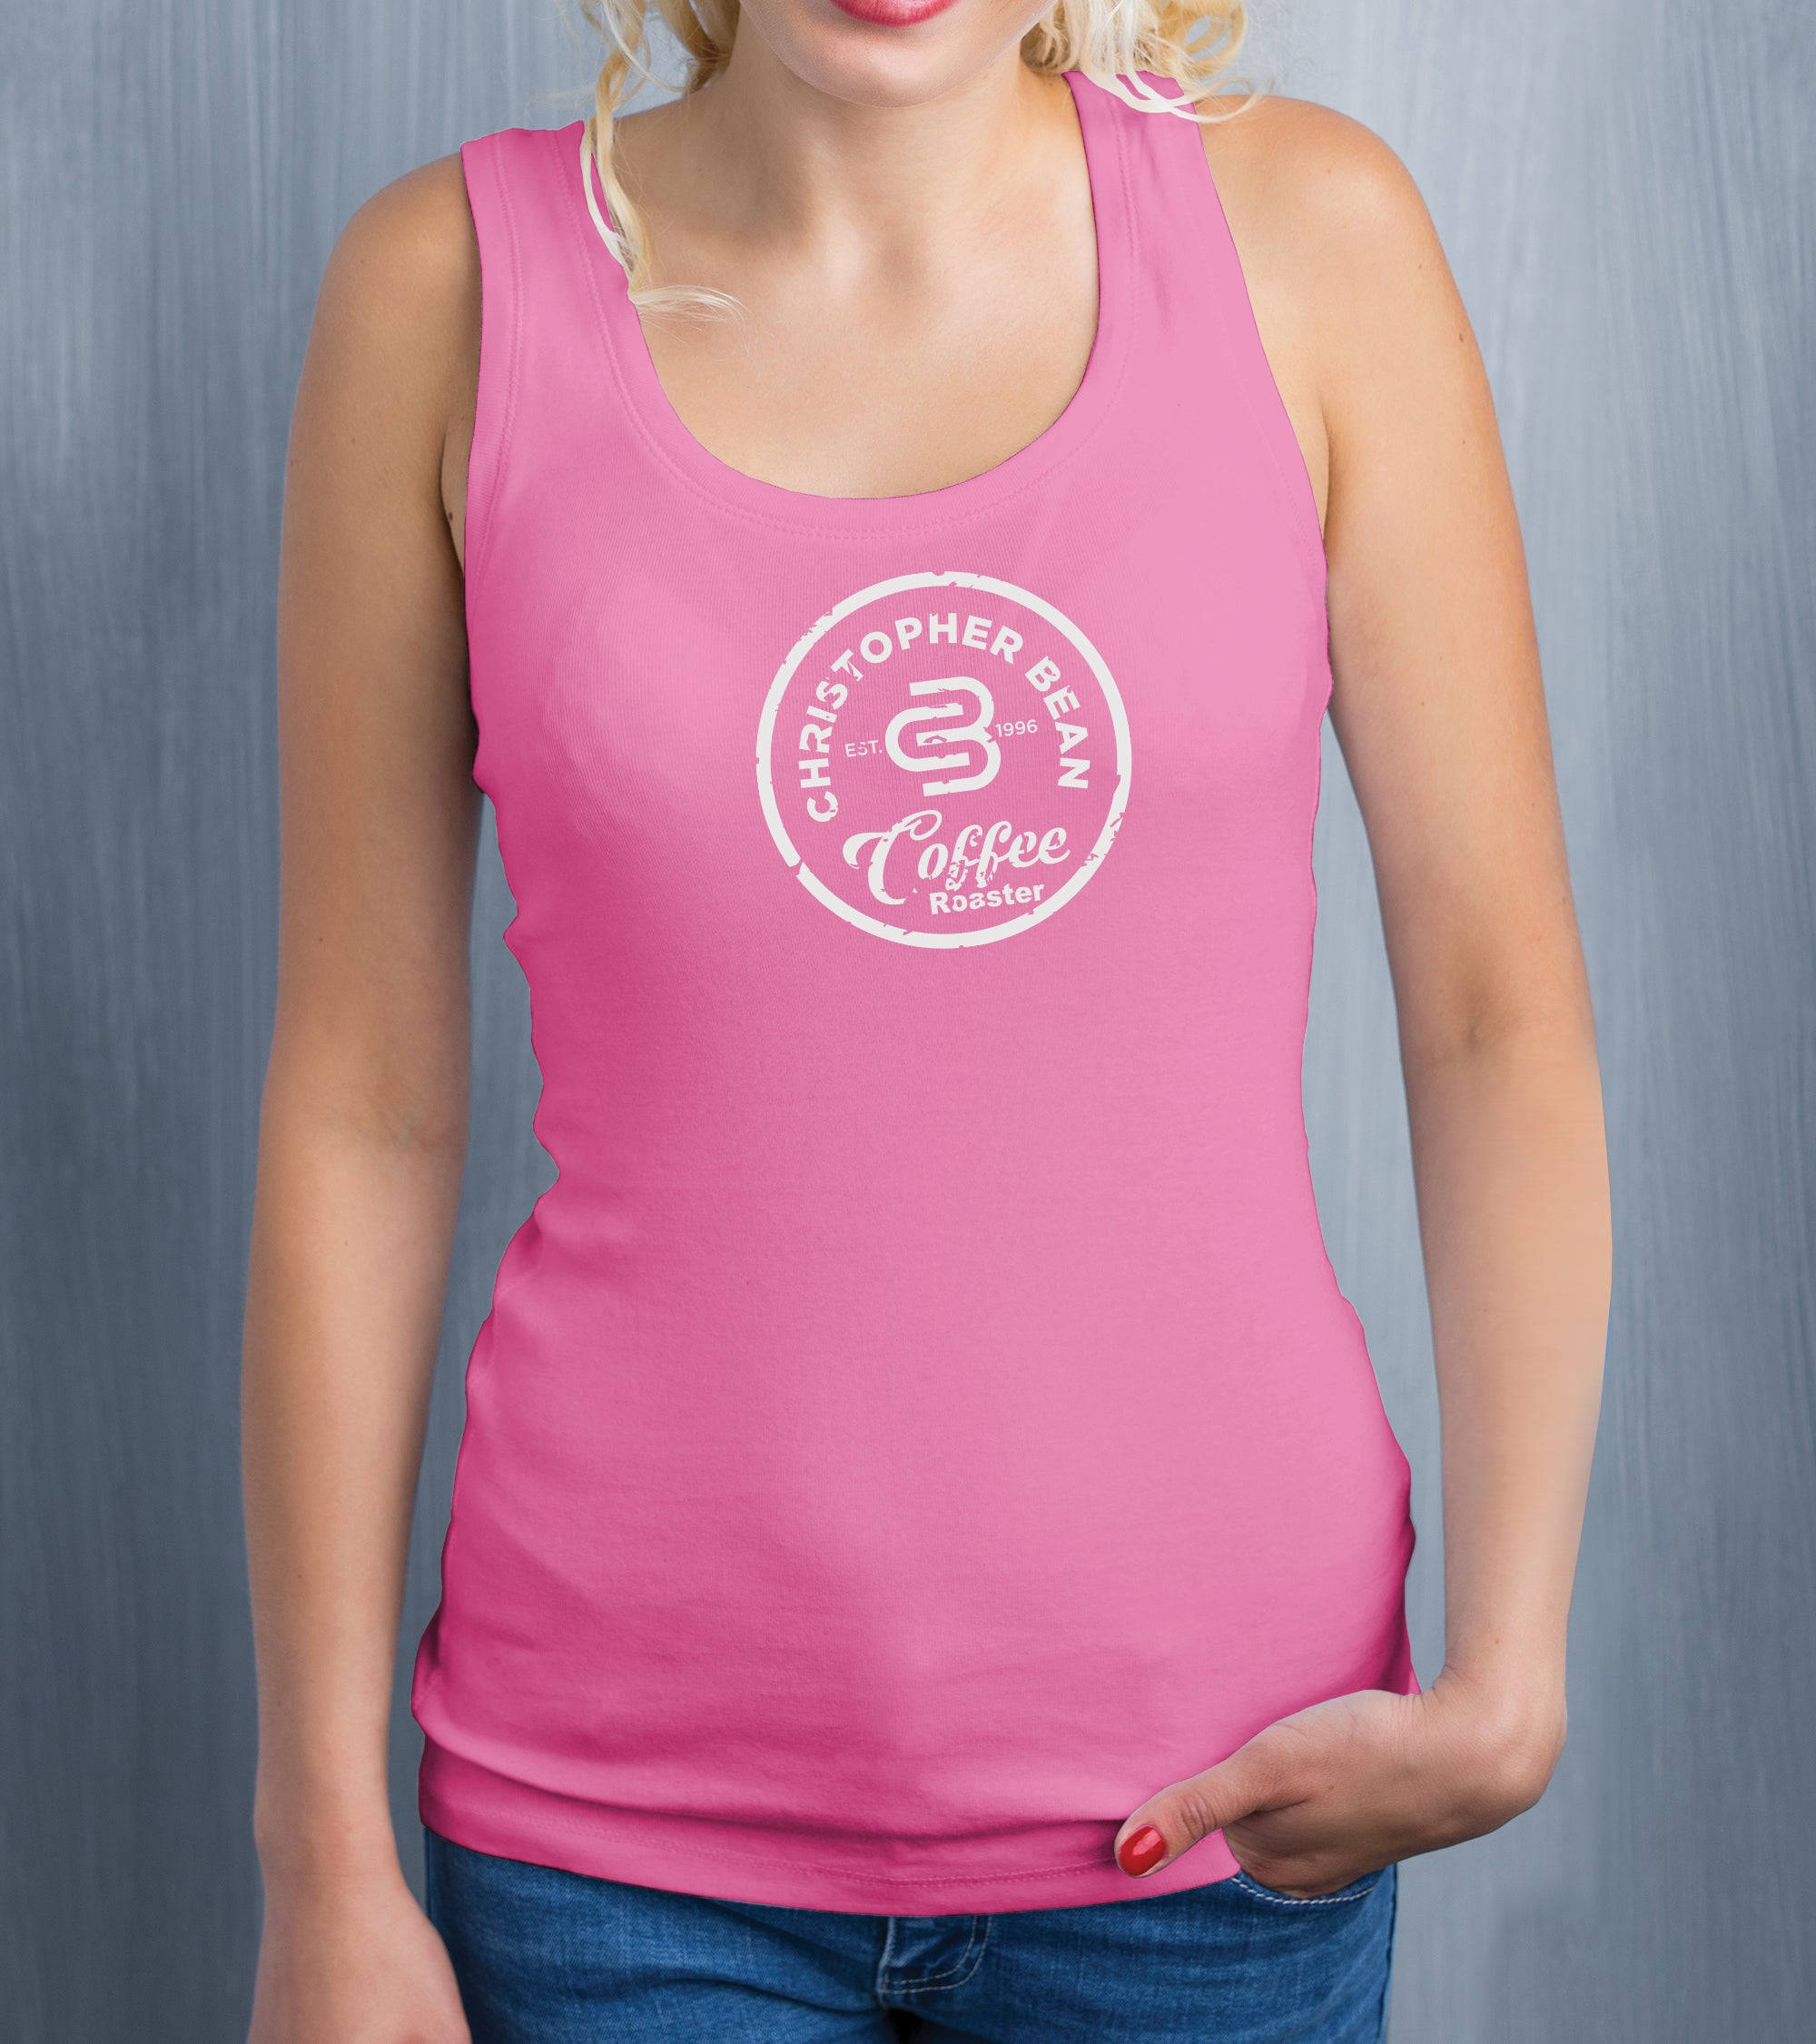 Ladies Since 1996 Coffee Roaster Tank Top